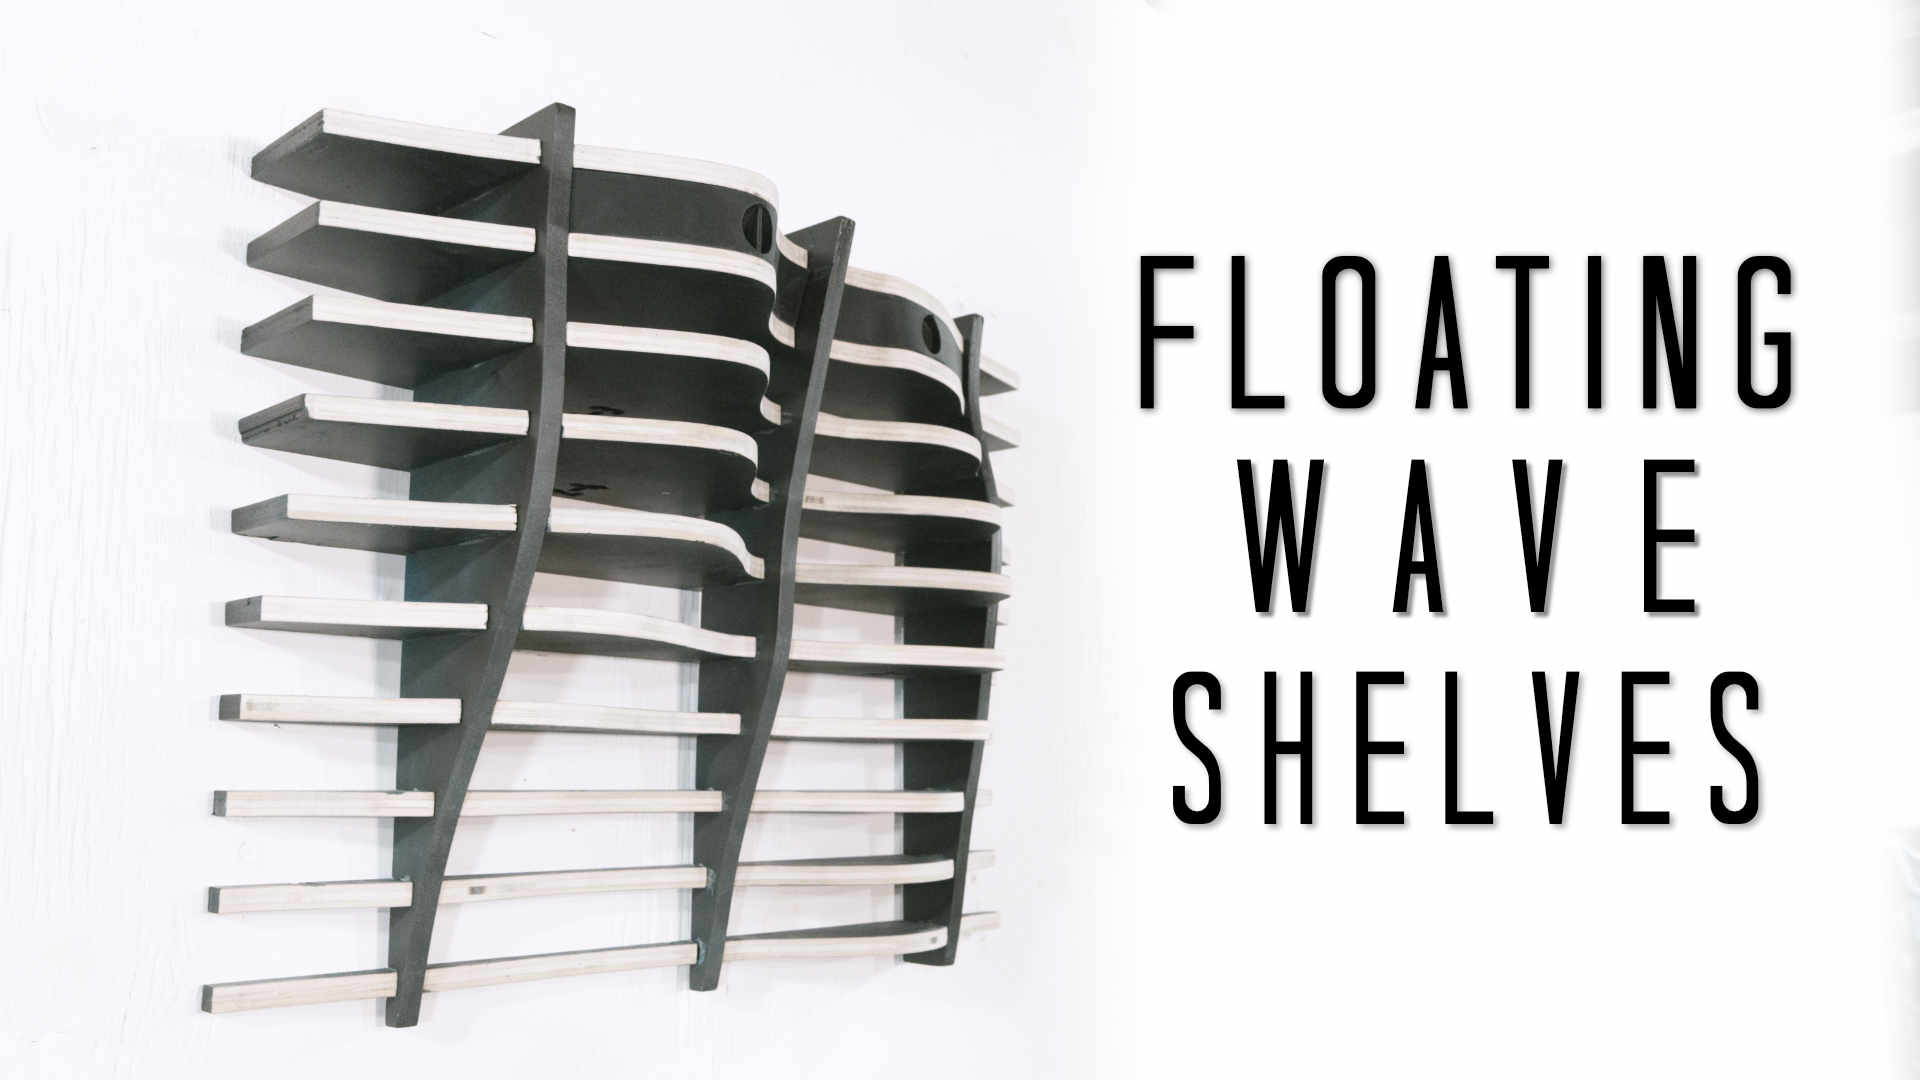 wave shelf cover idea 06.jpg